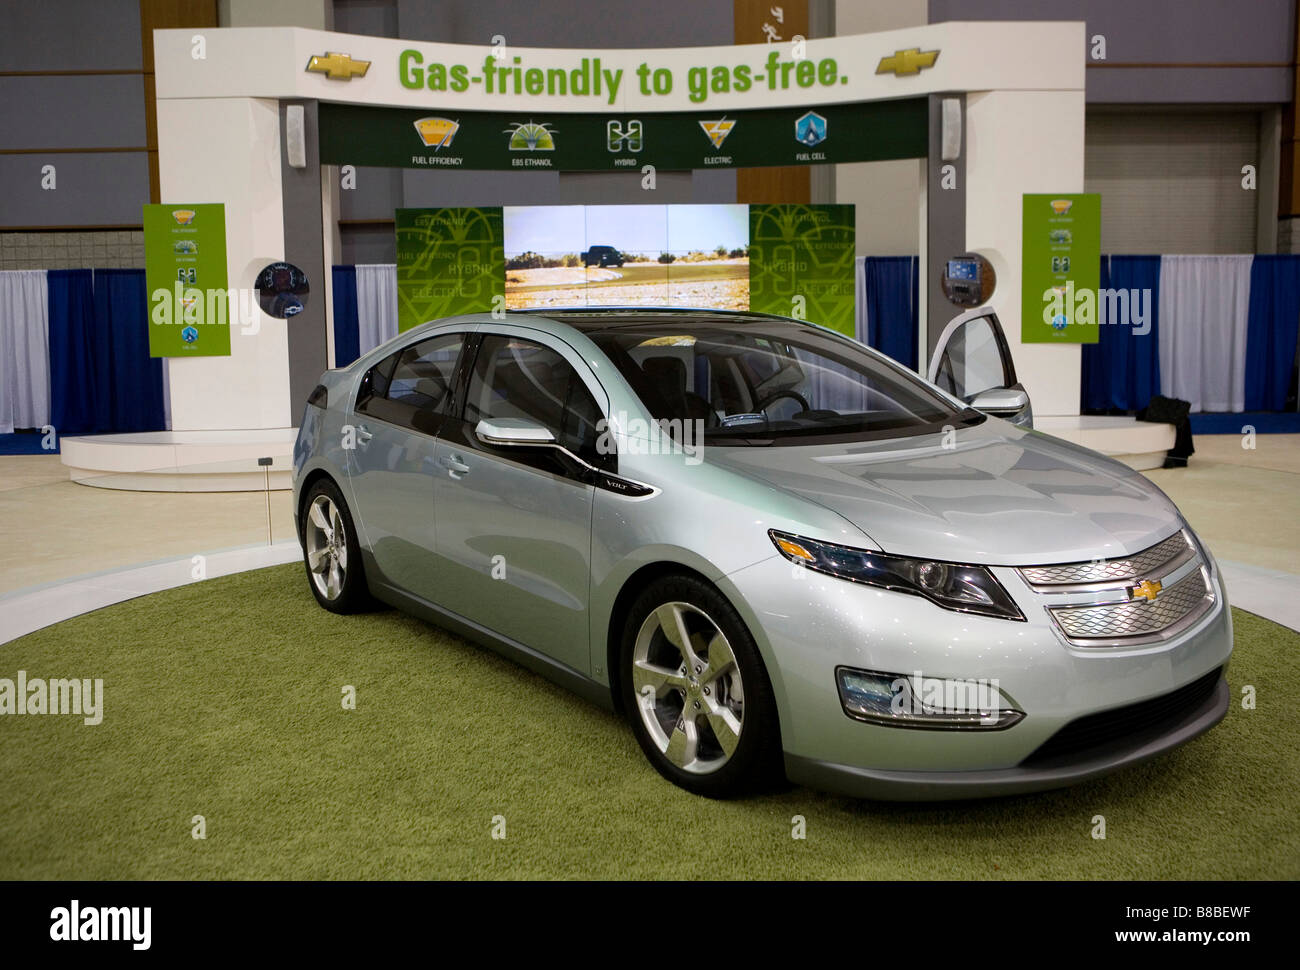 Chevrolet Volt Stock Photos Images Alamy Chevy Gas 4 February 2009 Washington D C The On Display At Auto Show